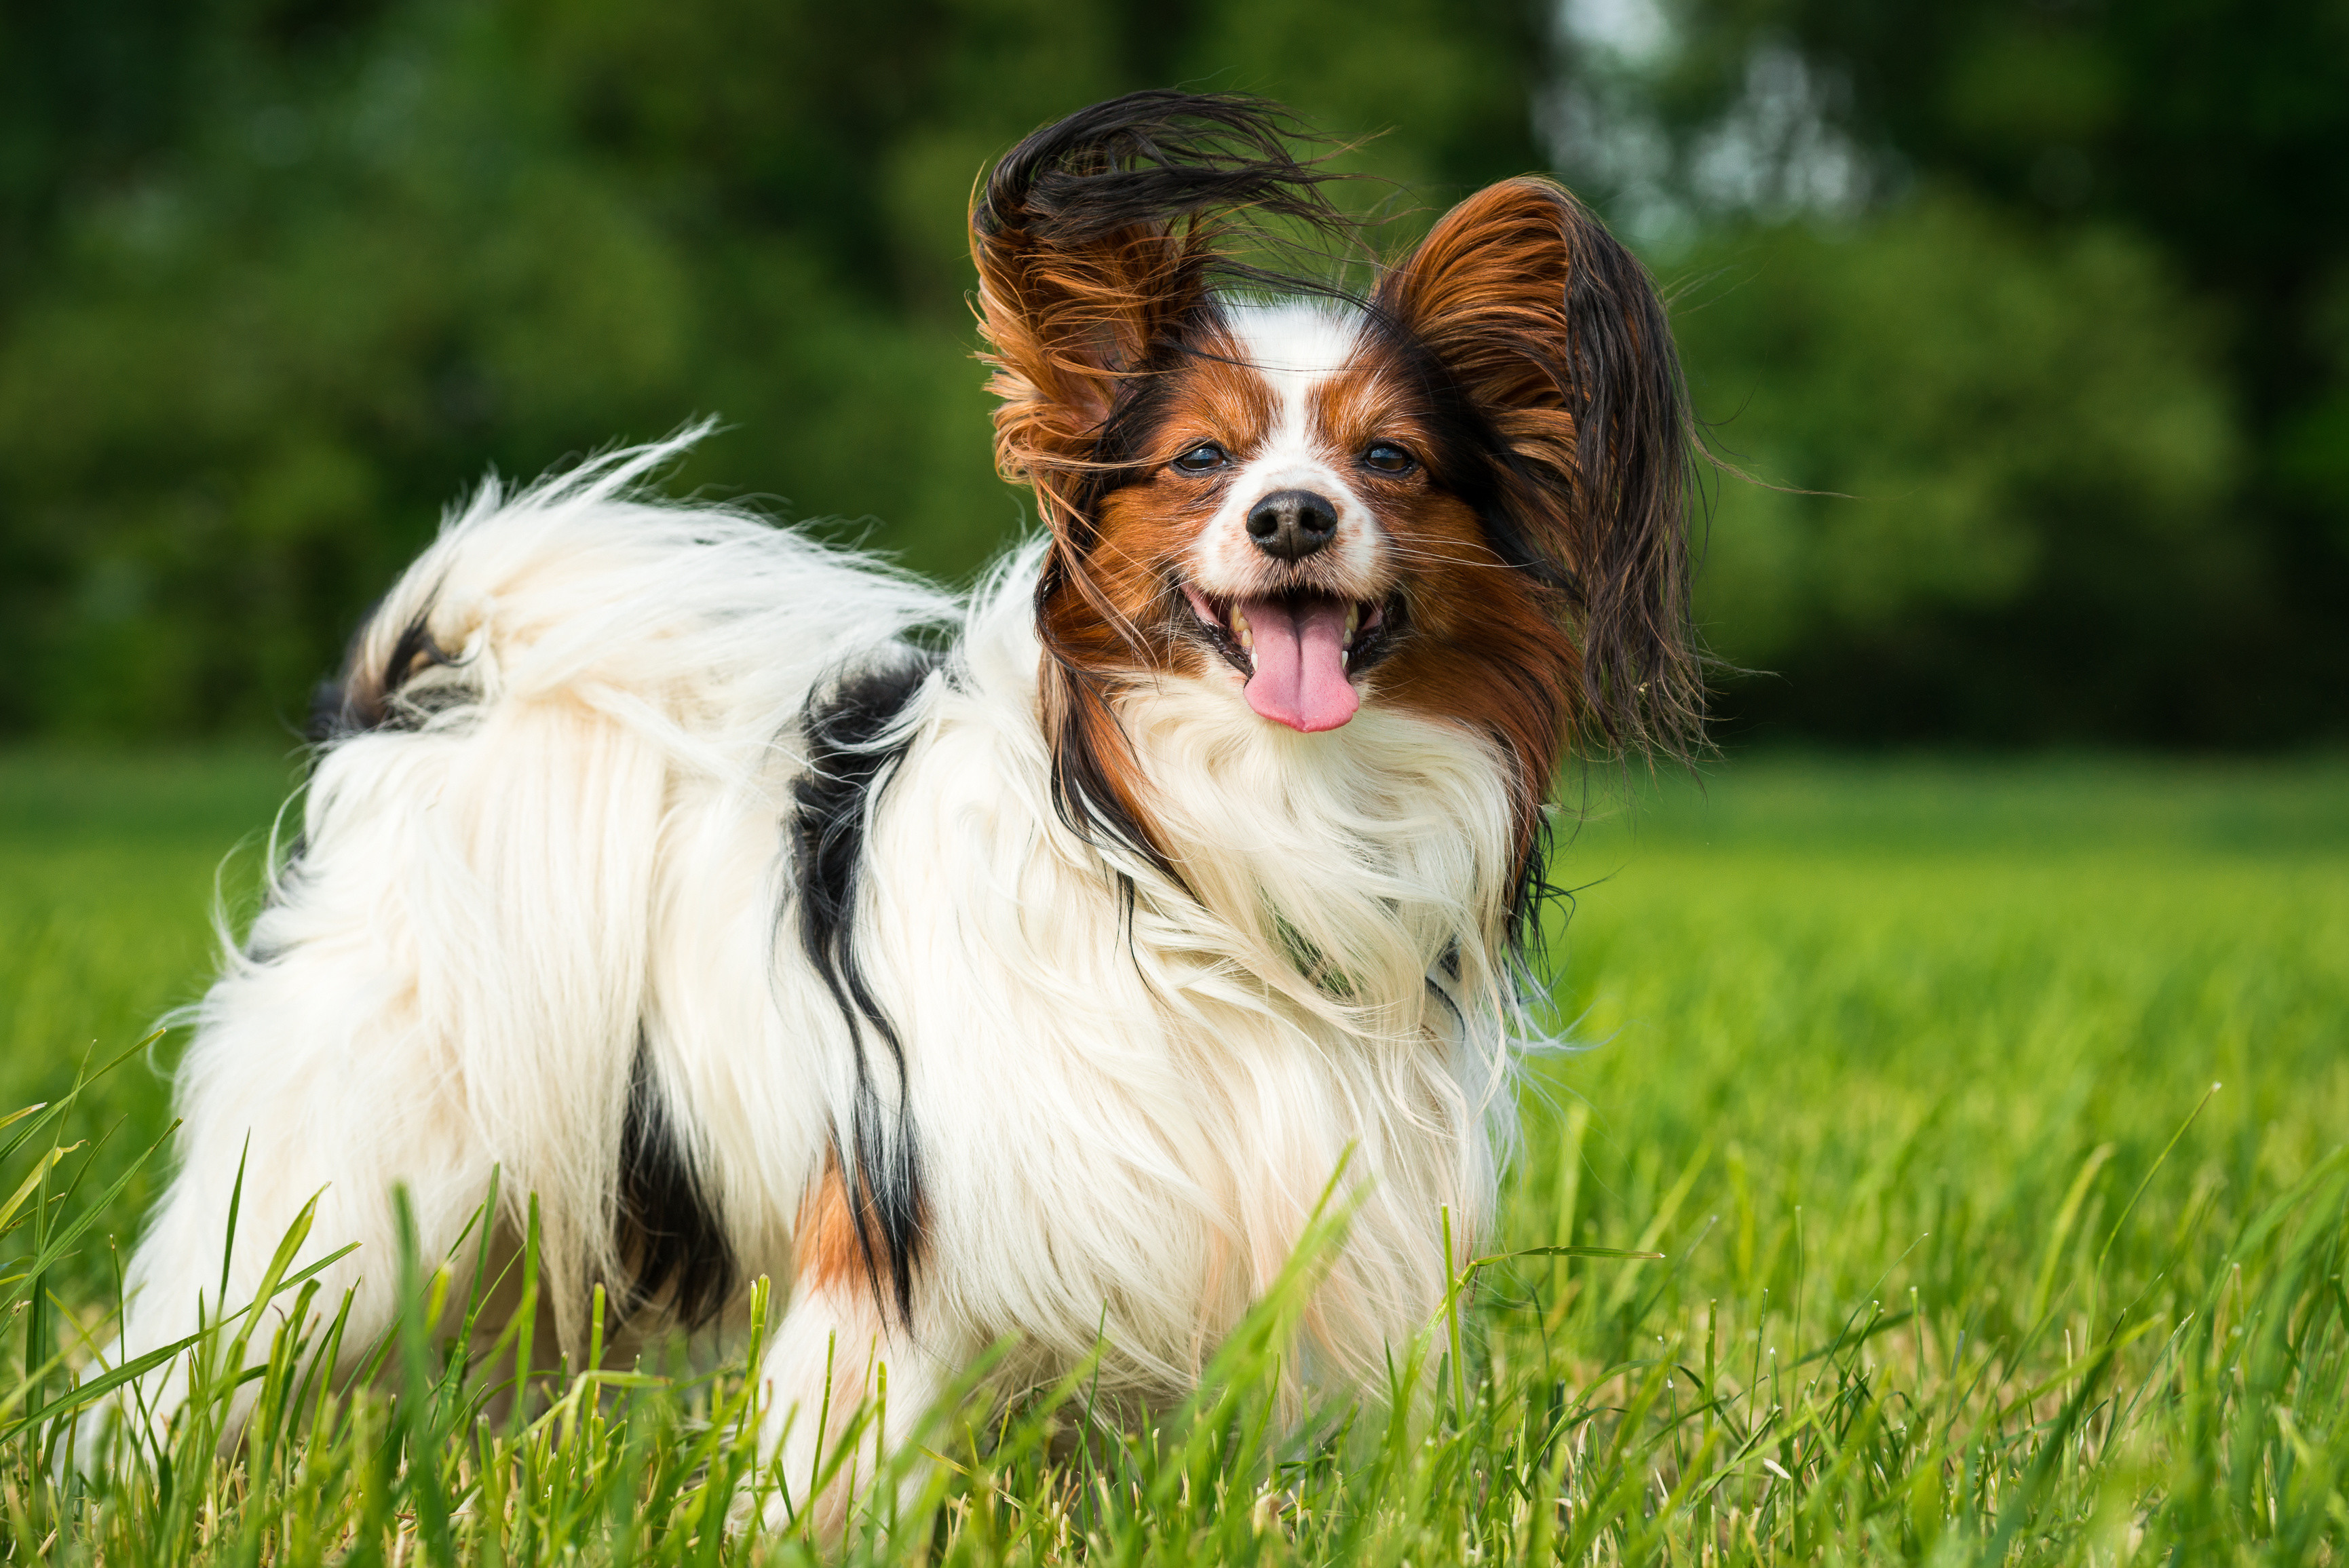 What's your Mutt DNA Brown, black, and white Papillon dog standing in a grassy field with its tongue out